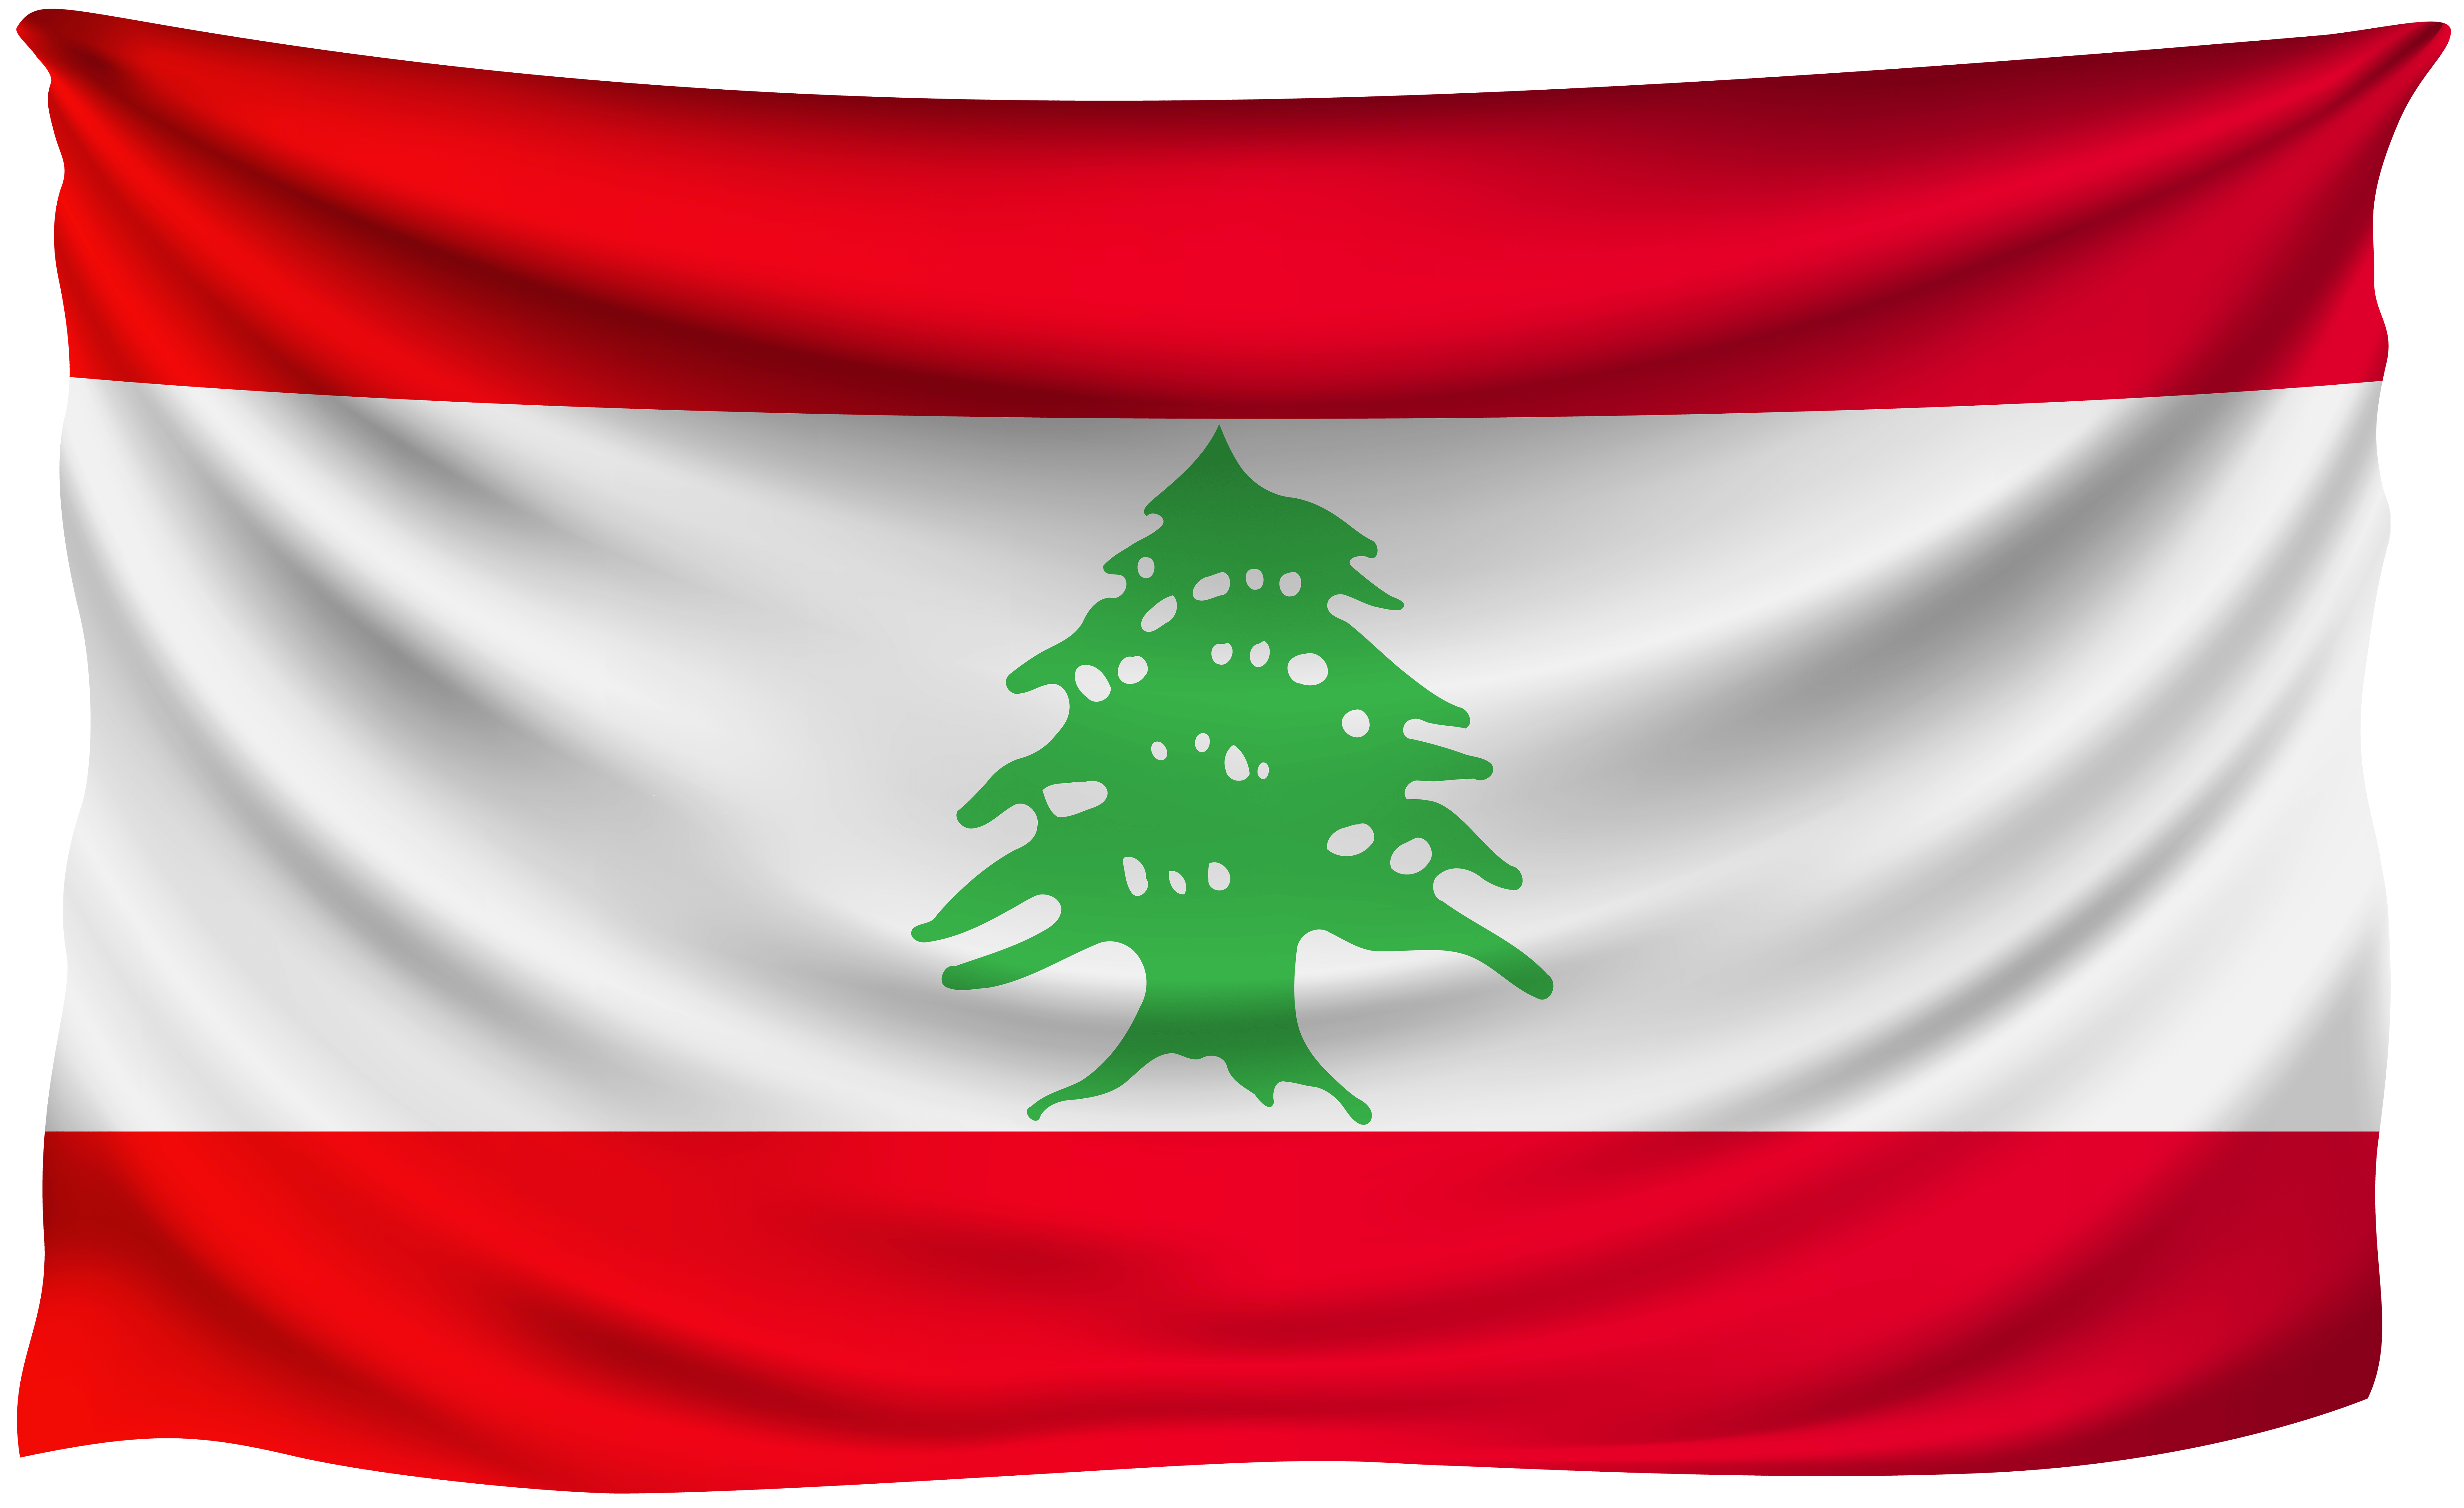 Lebanon Flag Wallpapers - Wallpaper Cave